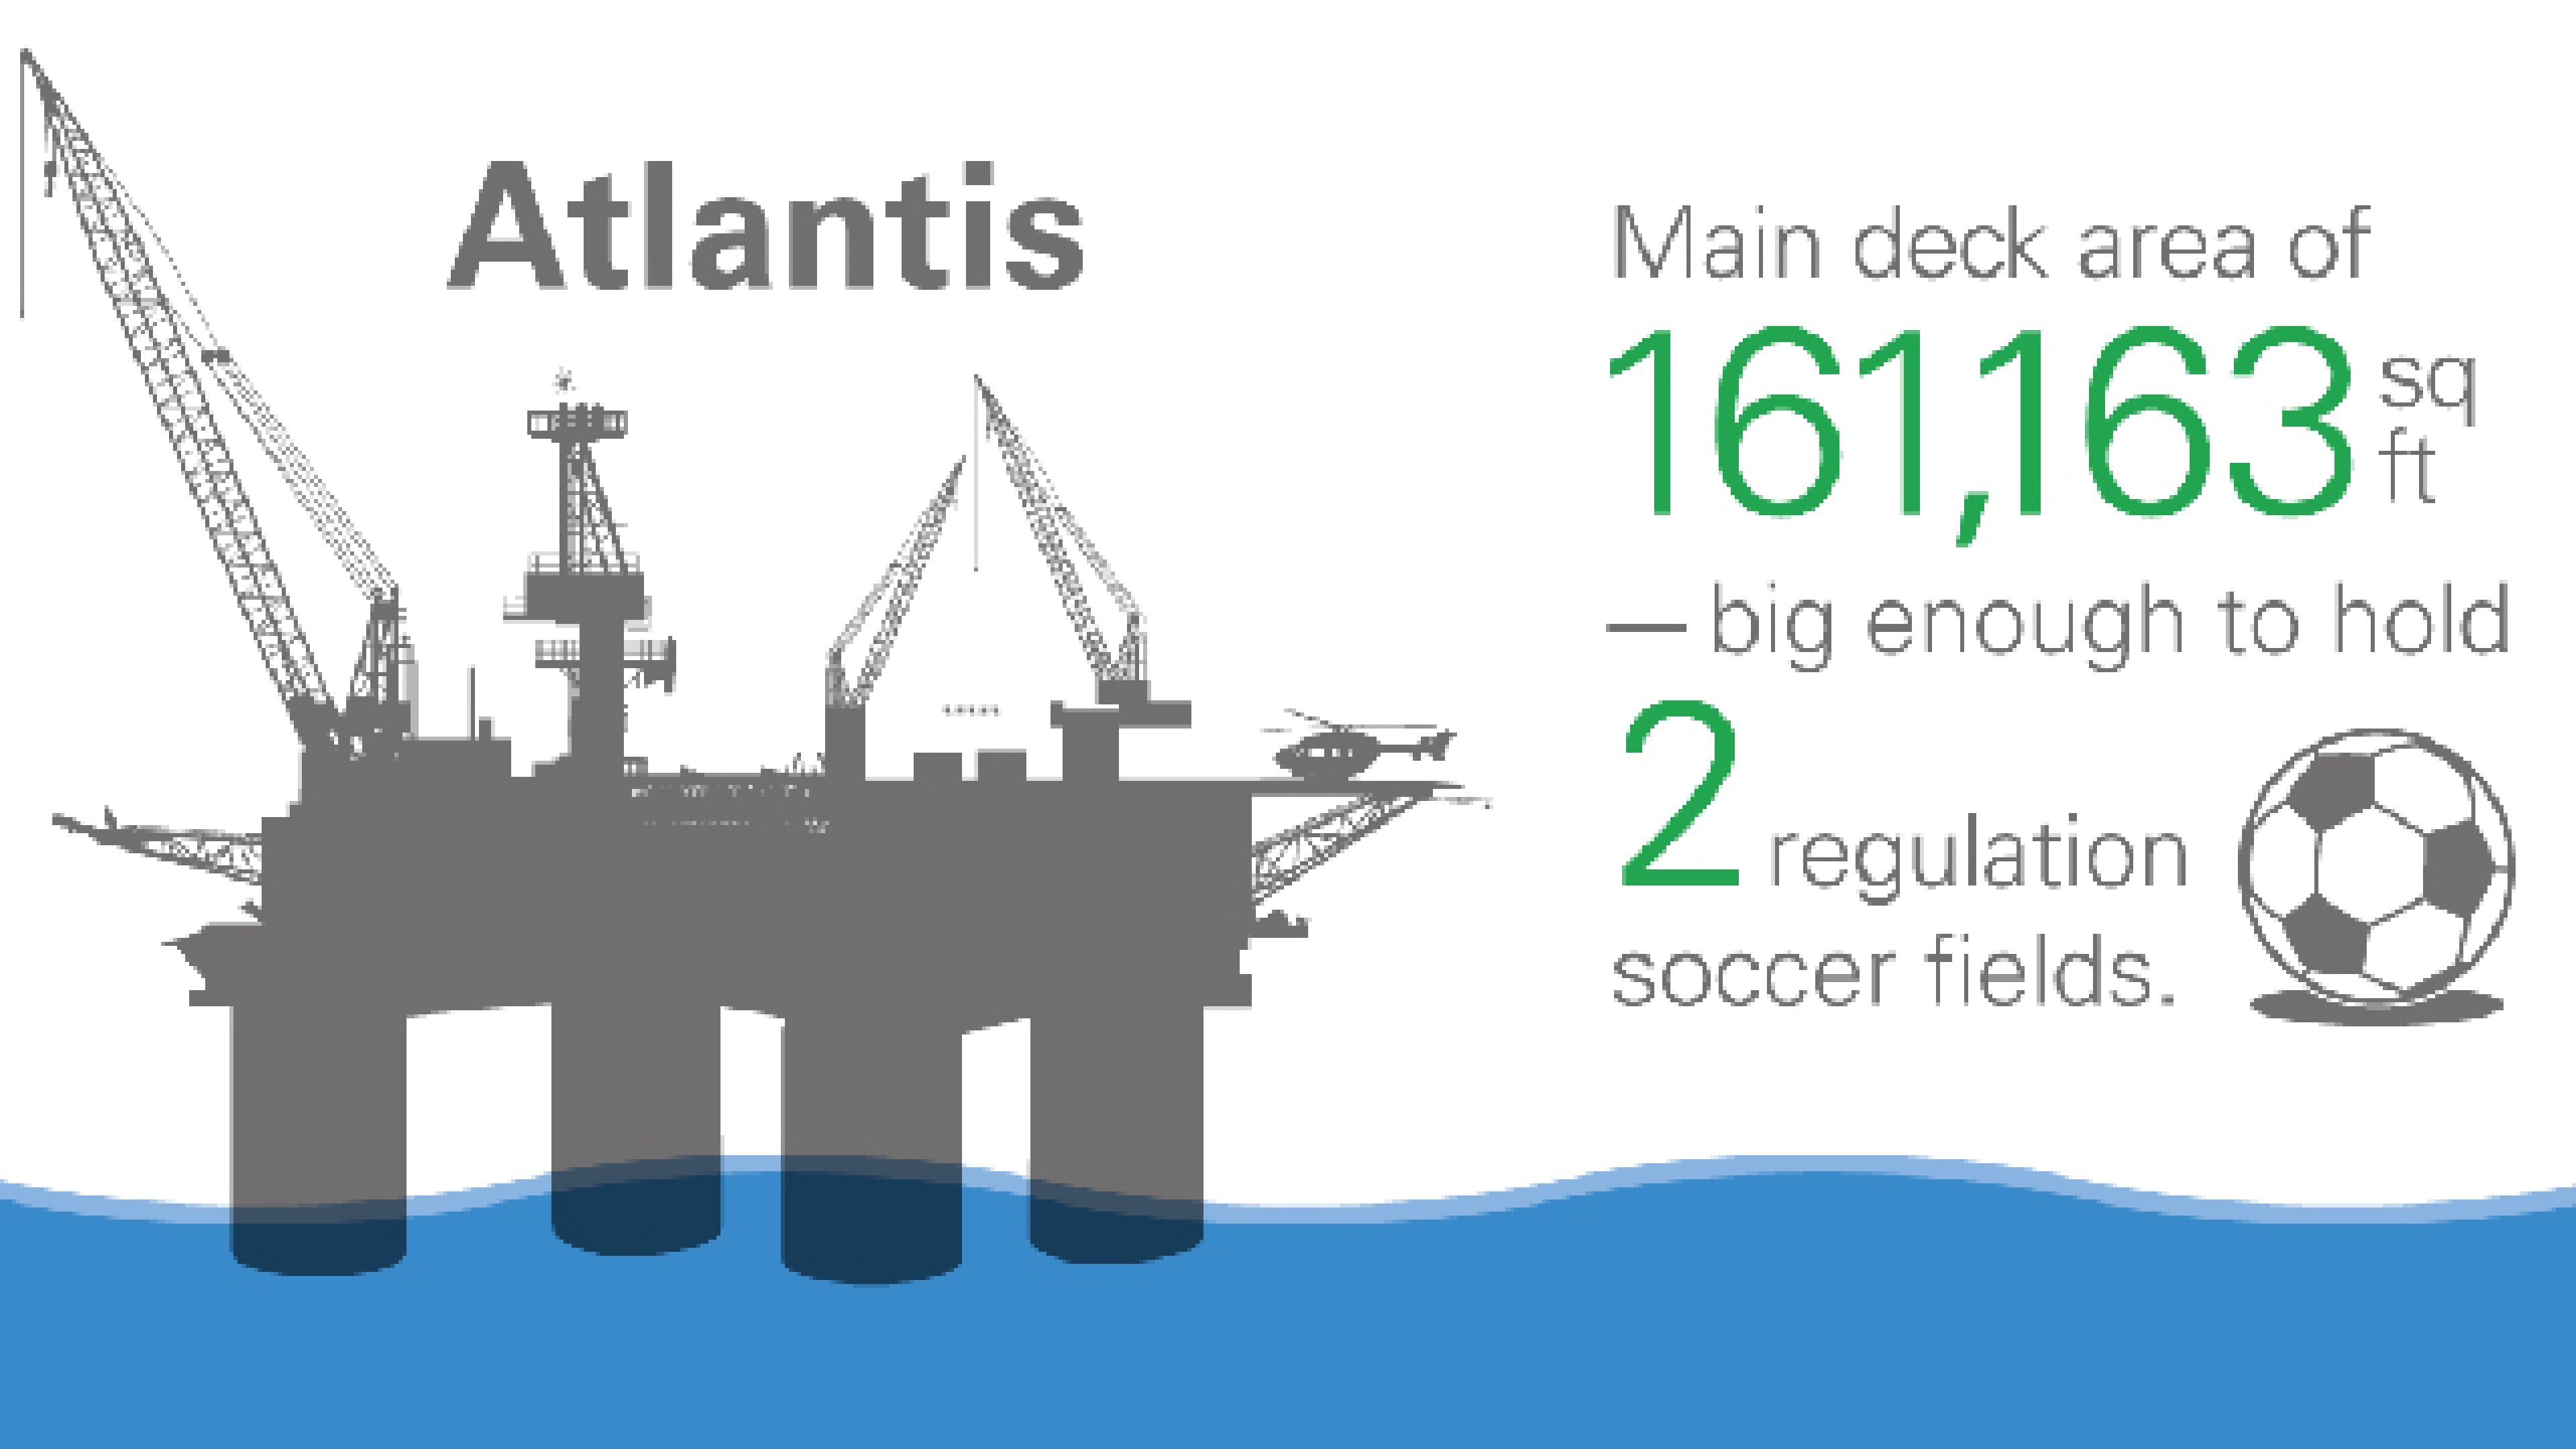 Atlantis infographic